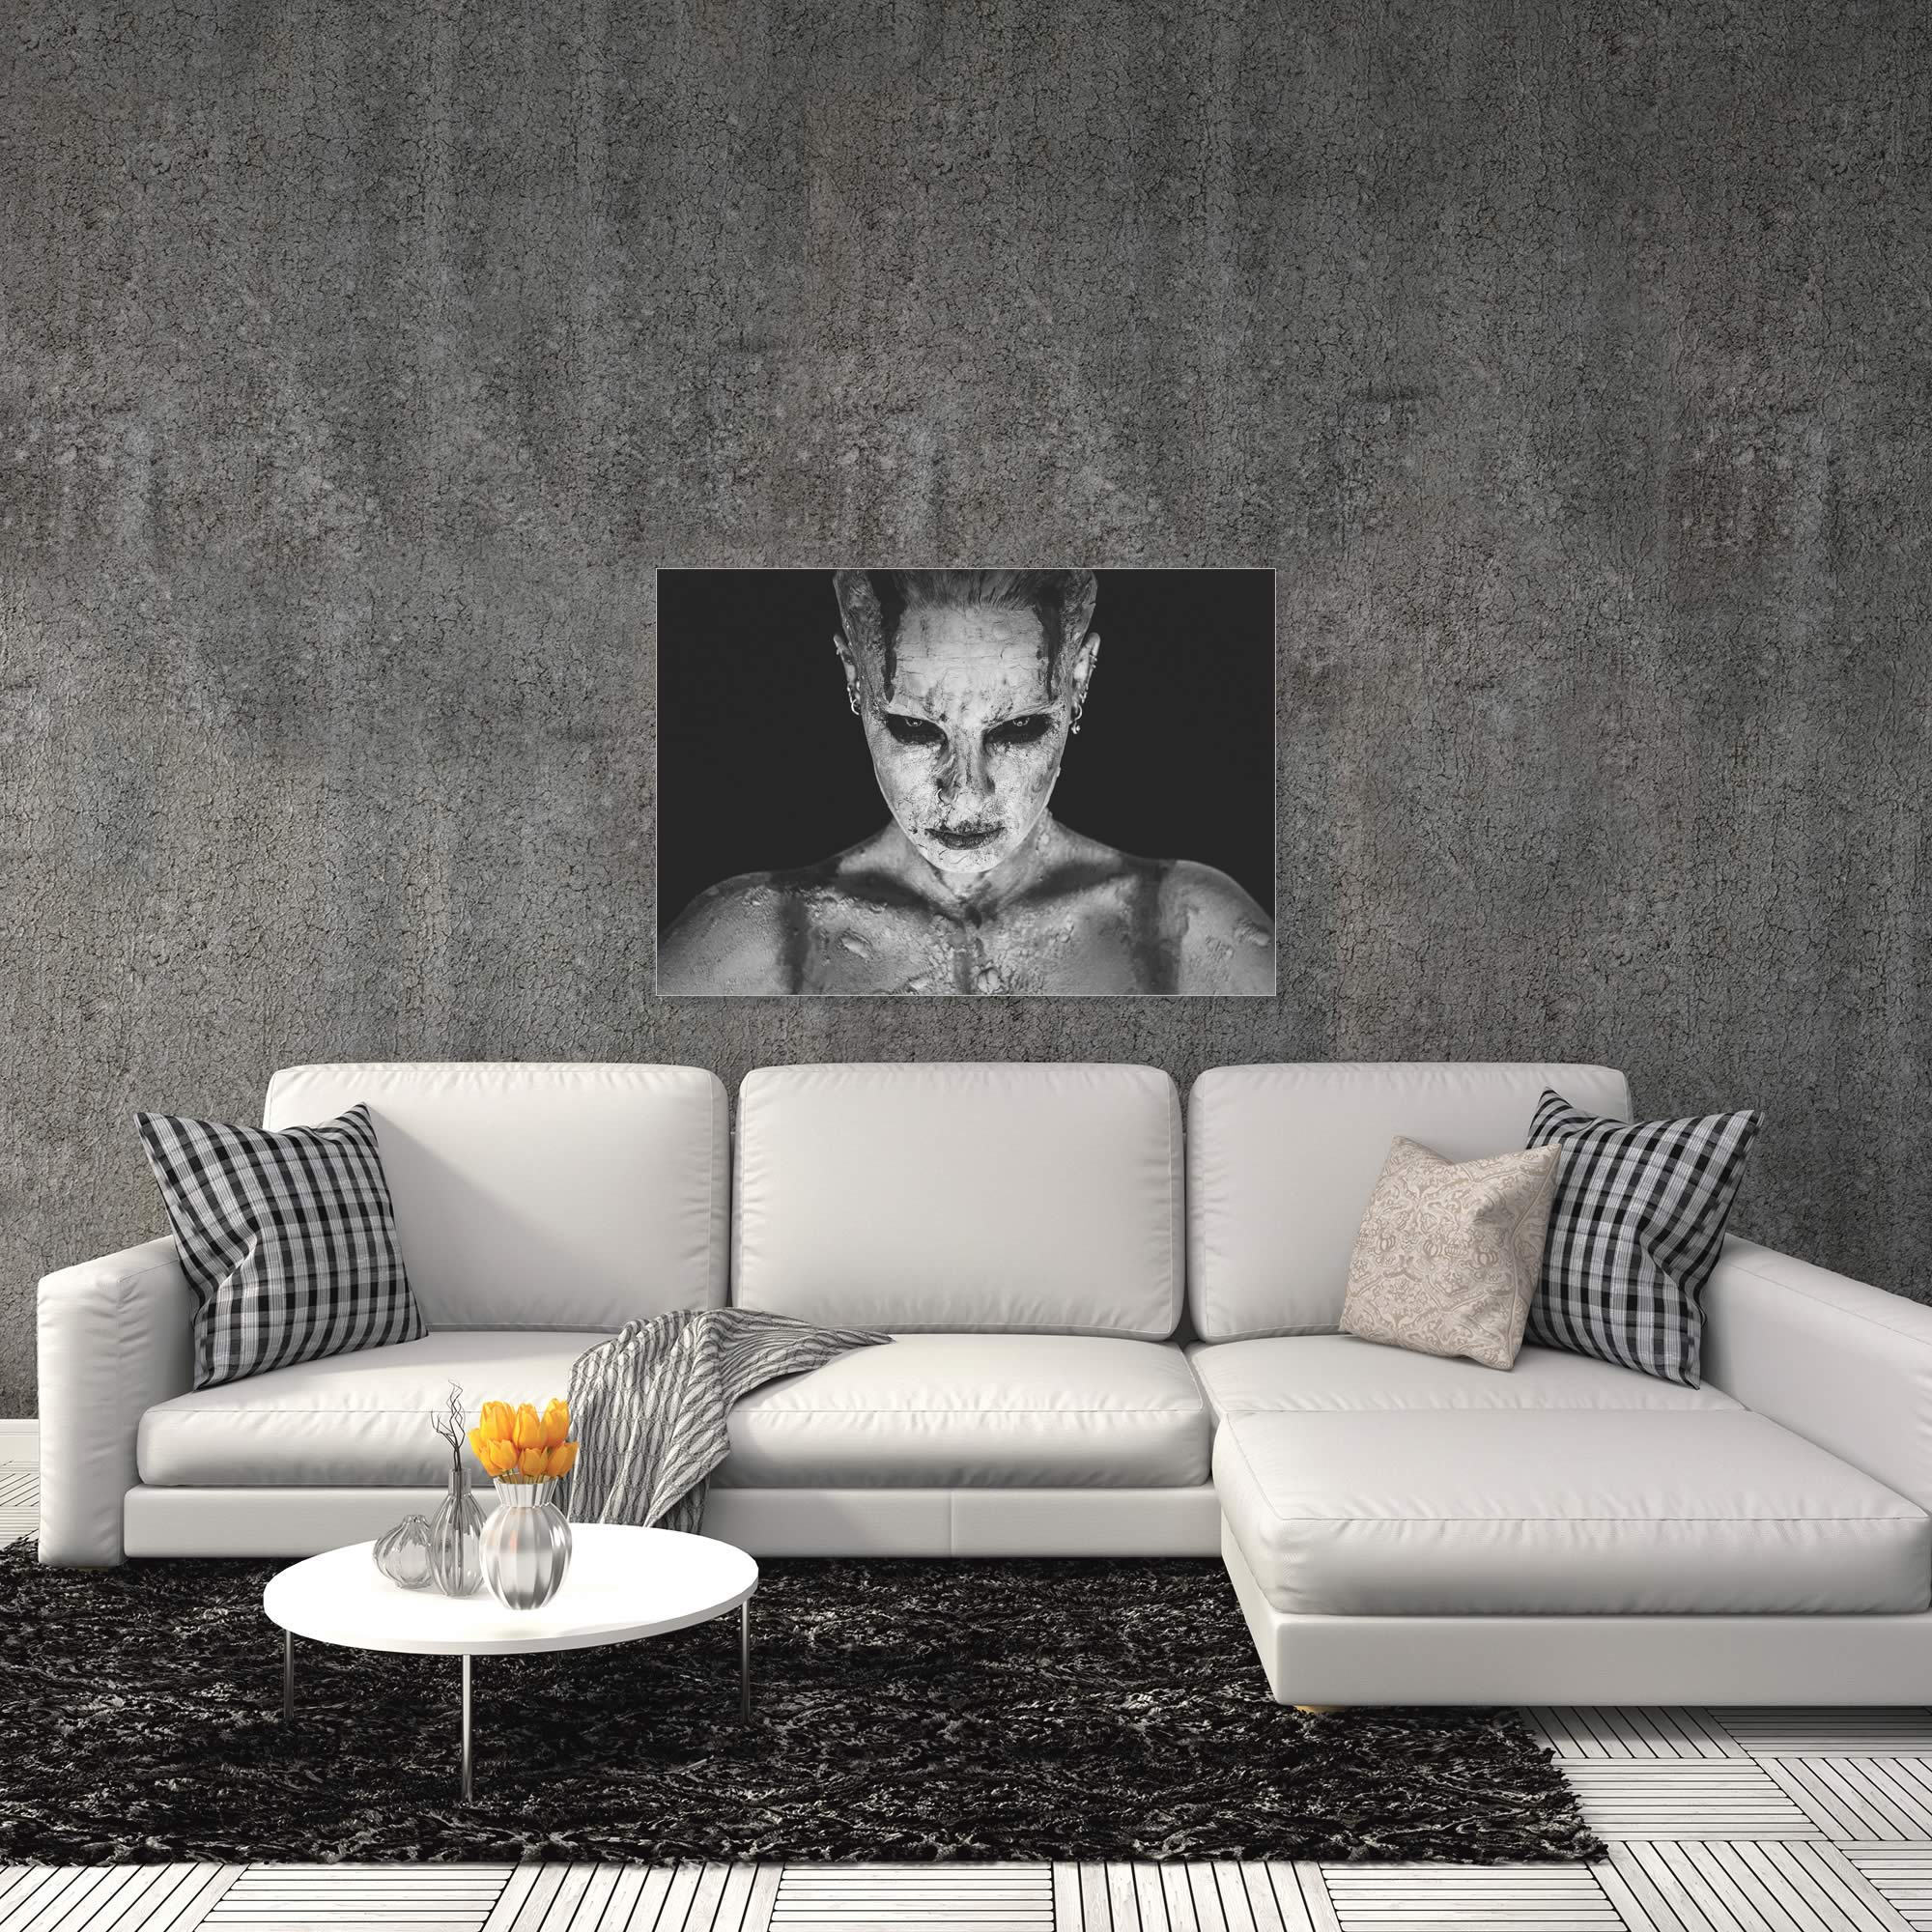 I Am Your Queen by Marco De Waal - Gothic Art on Metal or Acrylic - Alternate View 1